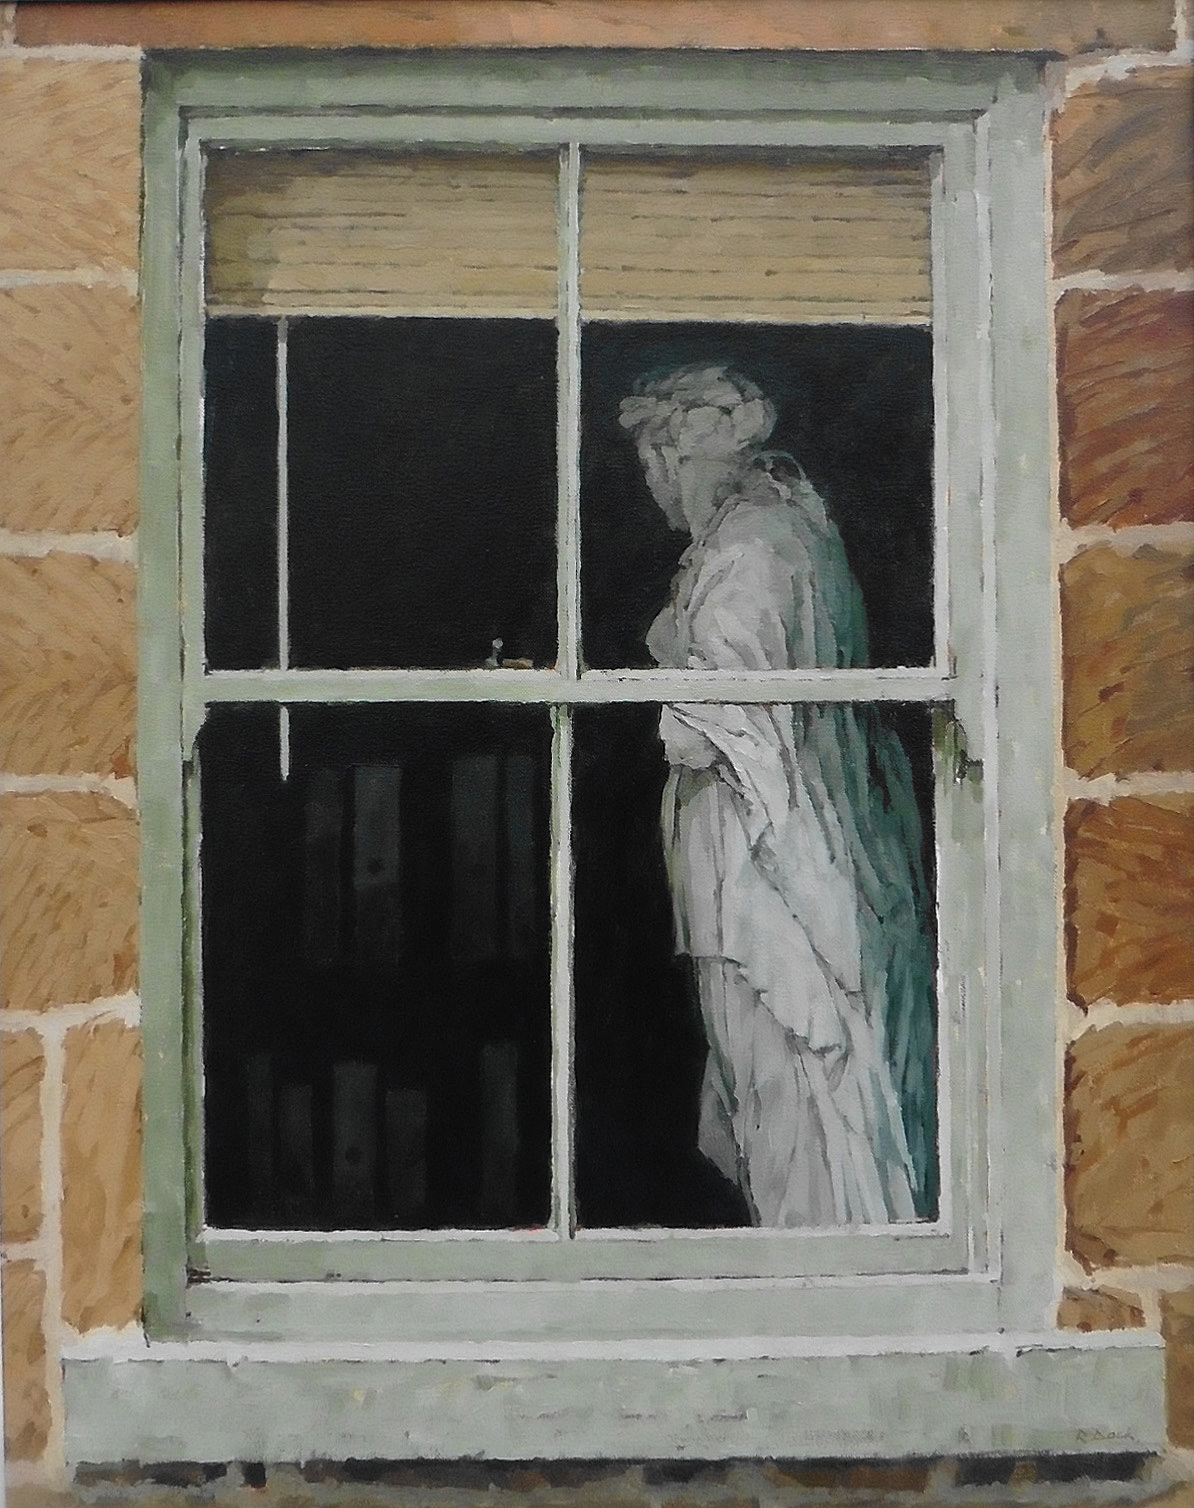 The Muse in the Window by RICHARD DACK RSMA